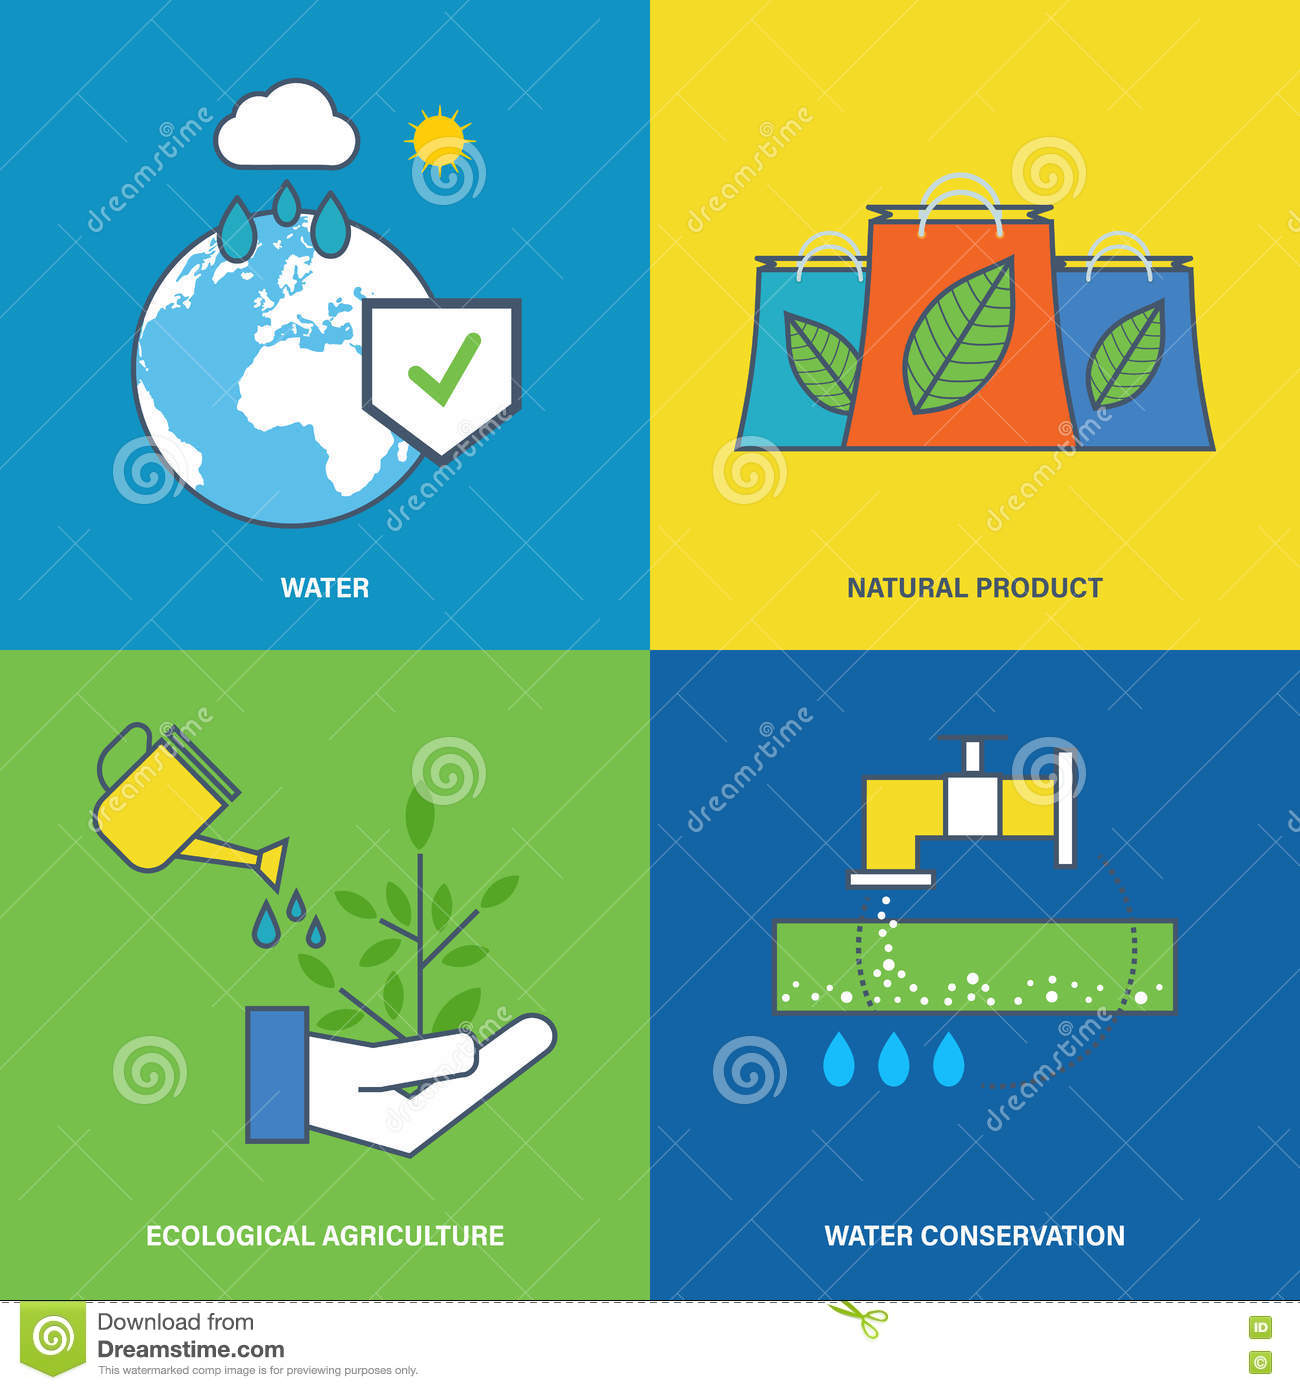 Illustration about environmental protection, preservation of water natural resources.